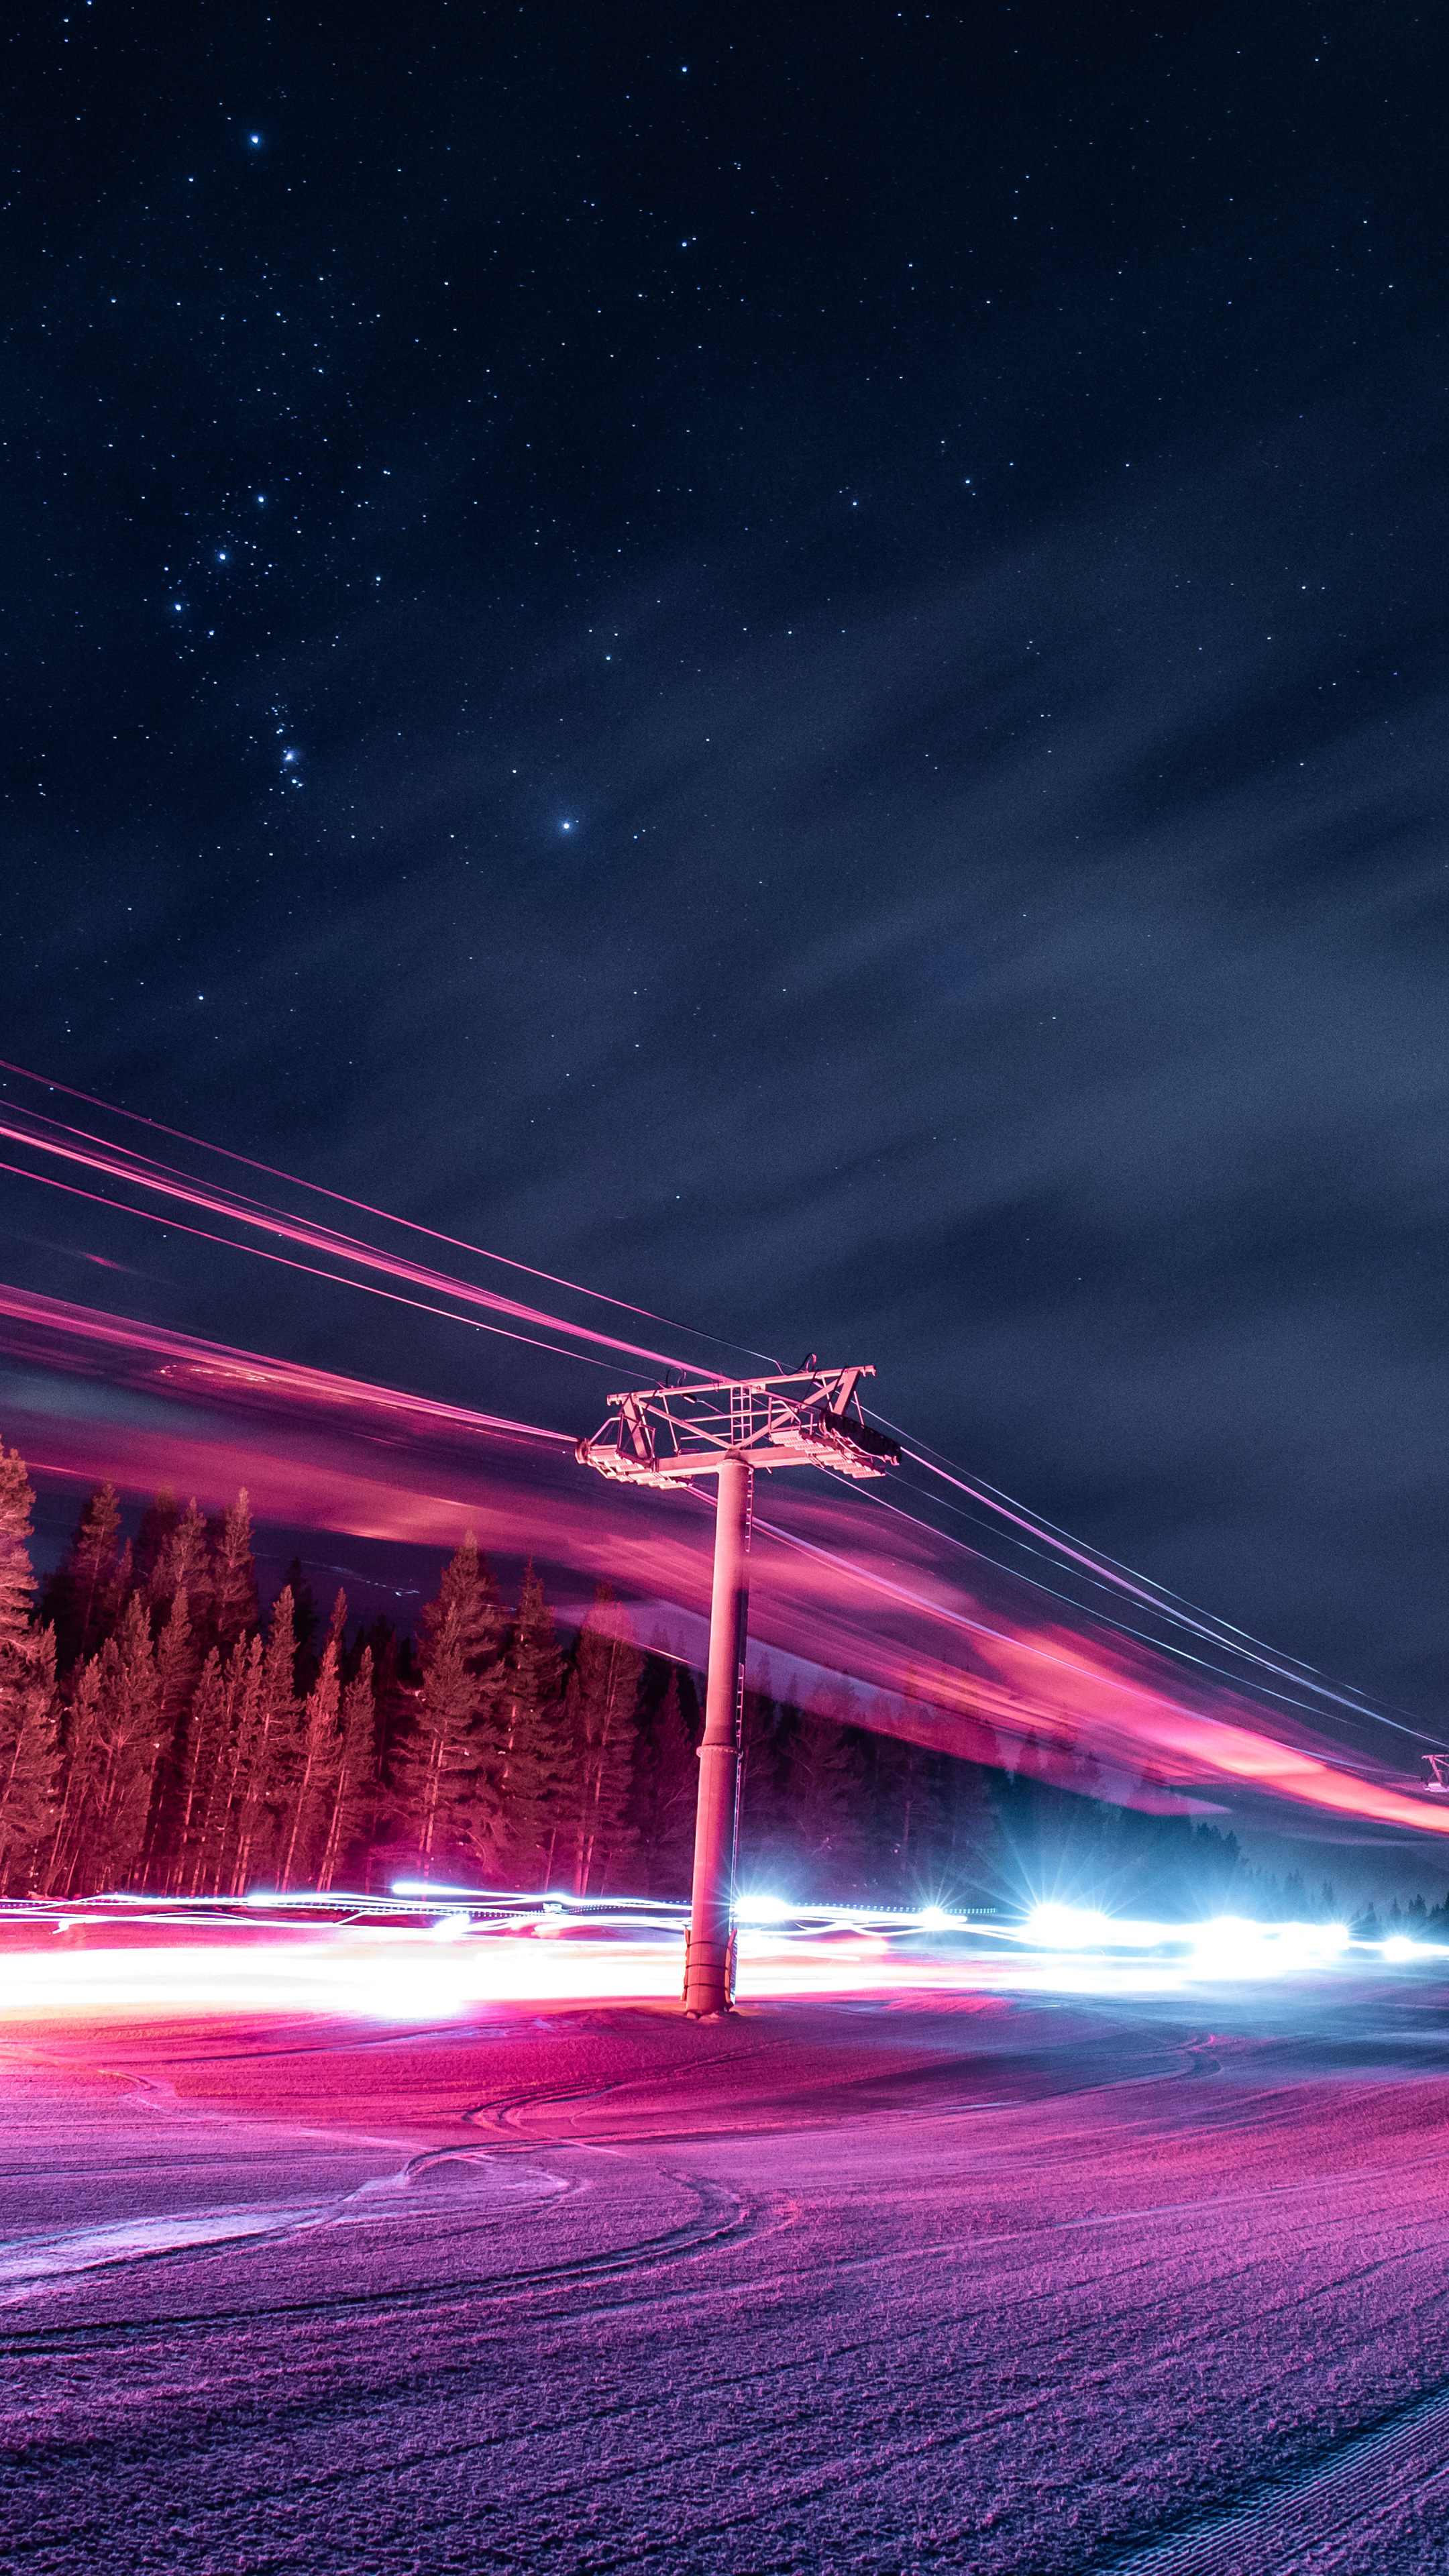 Copper Mountain Wallpapers And Backgrounds For Mobile And Desktop Devices